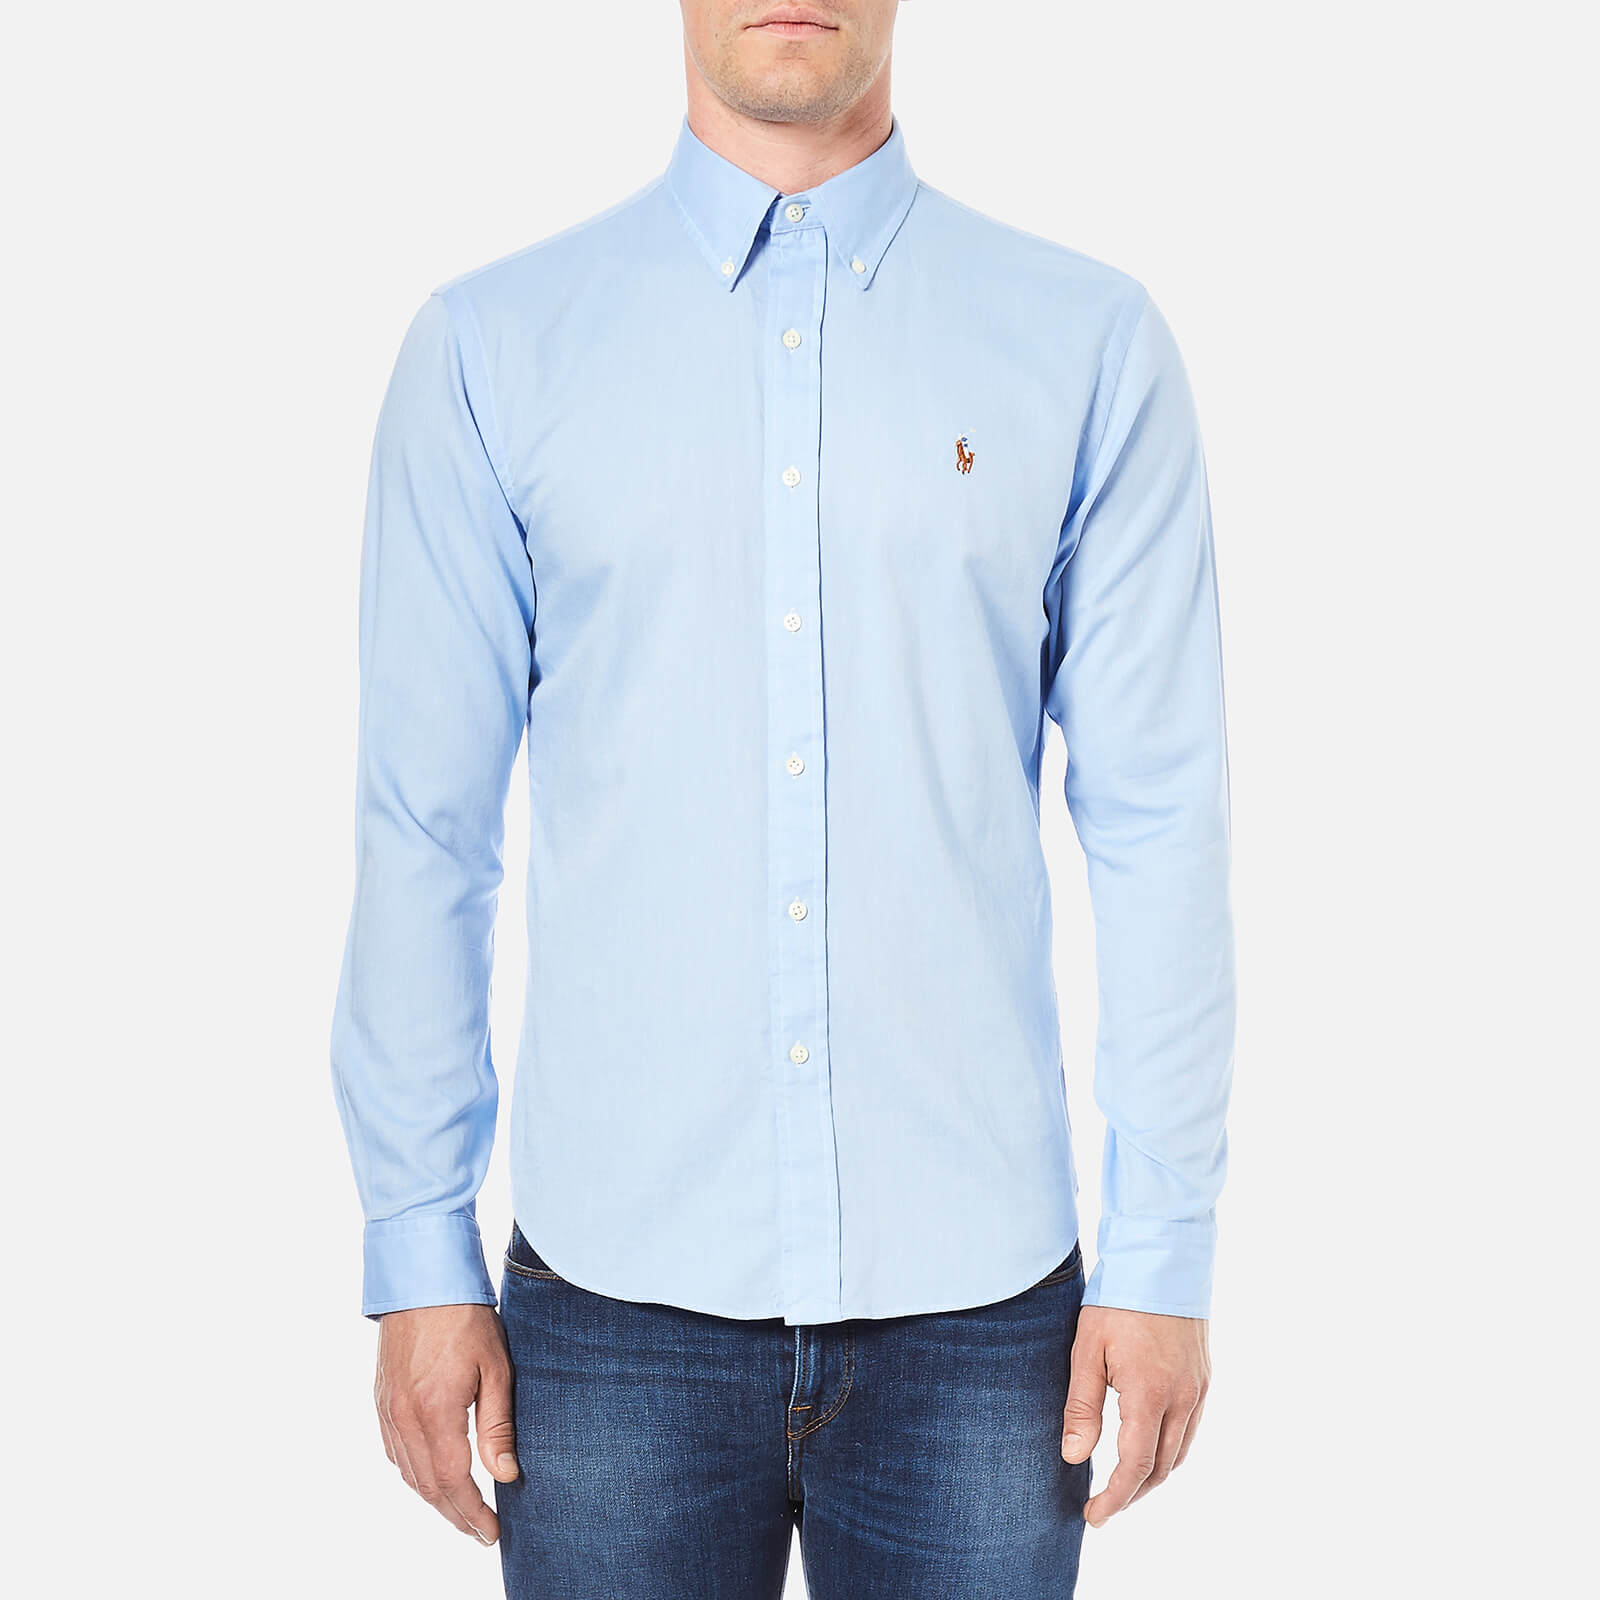 6849eb332b86 Polo Ralph Lauren Men s Long Sleeve Oxford Shirt - Light Blue - Free UK  Delivery over £50